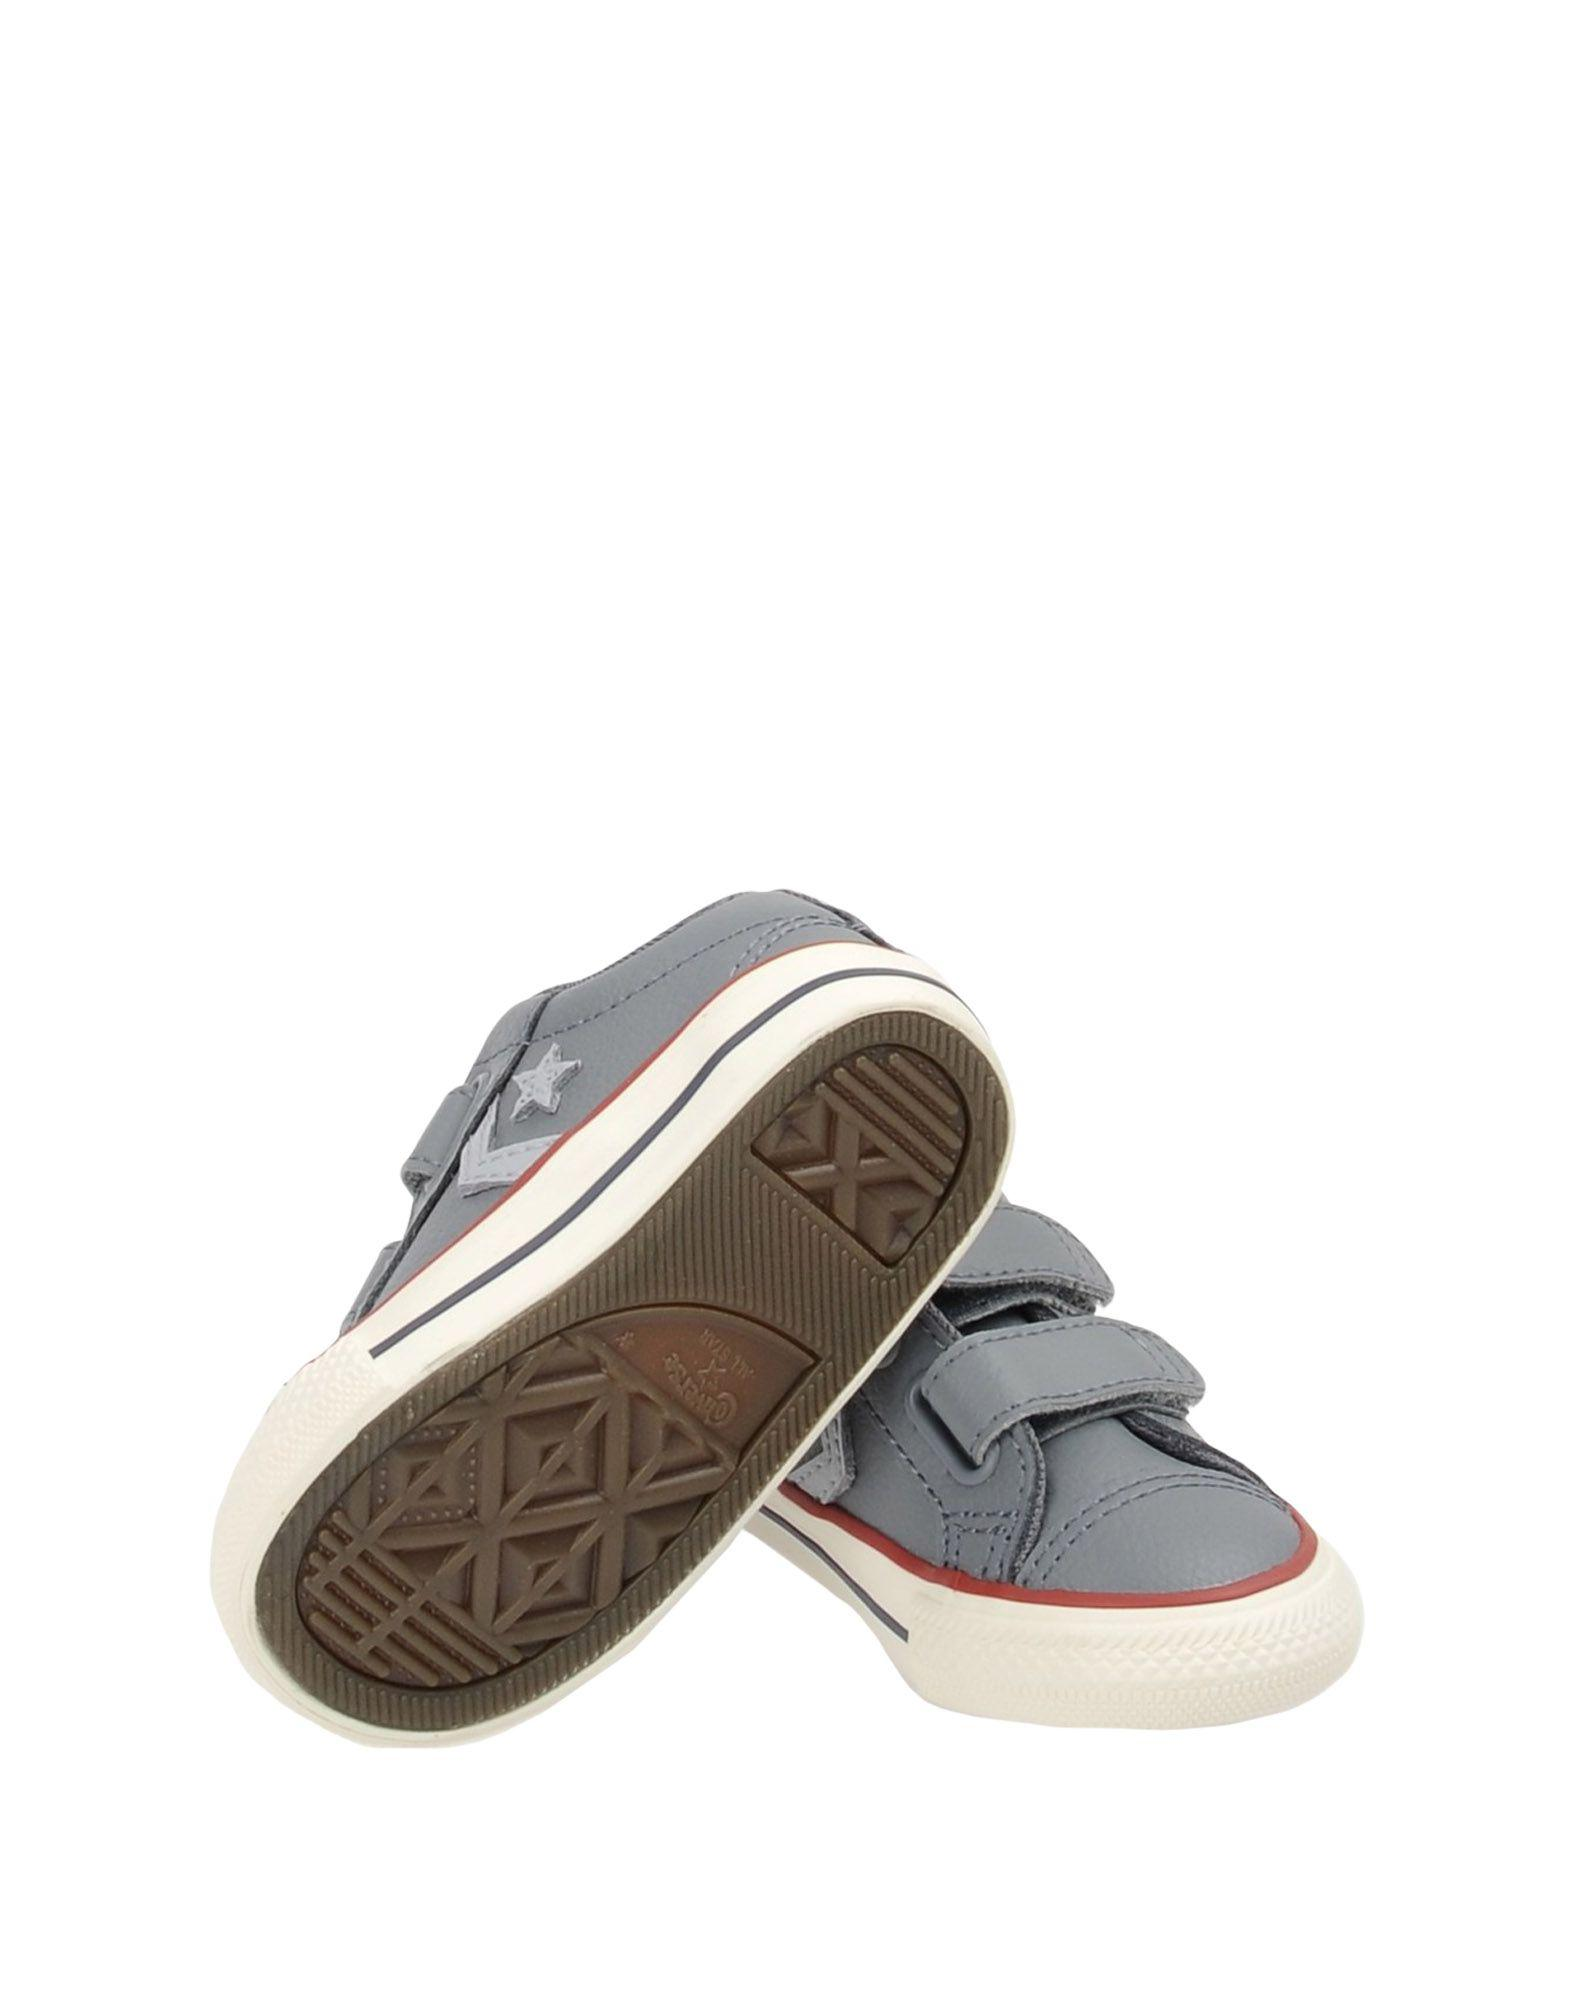 Converse CONS Leather Low-tops & Sneakers in Grey (Grey)